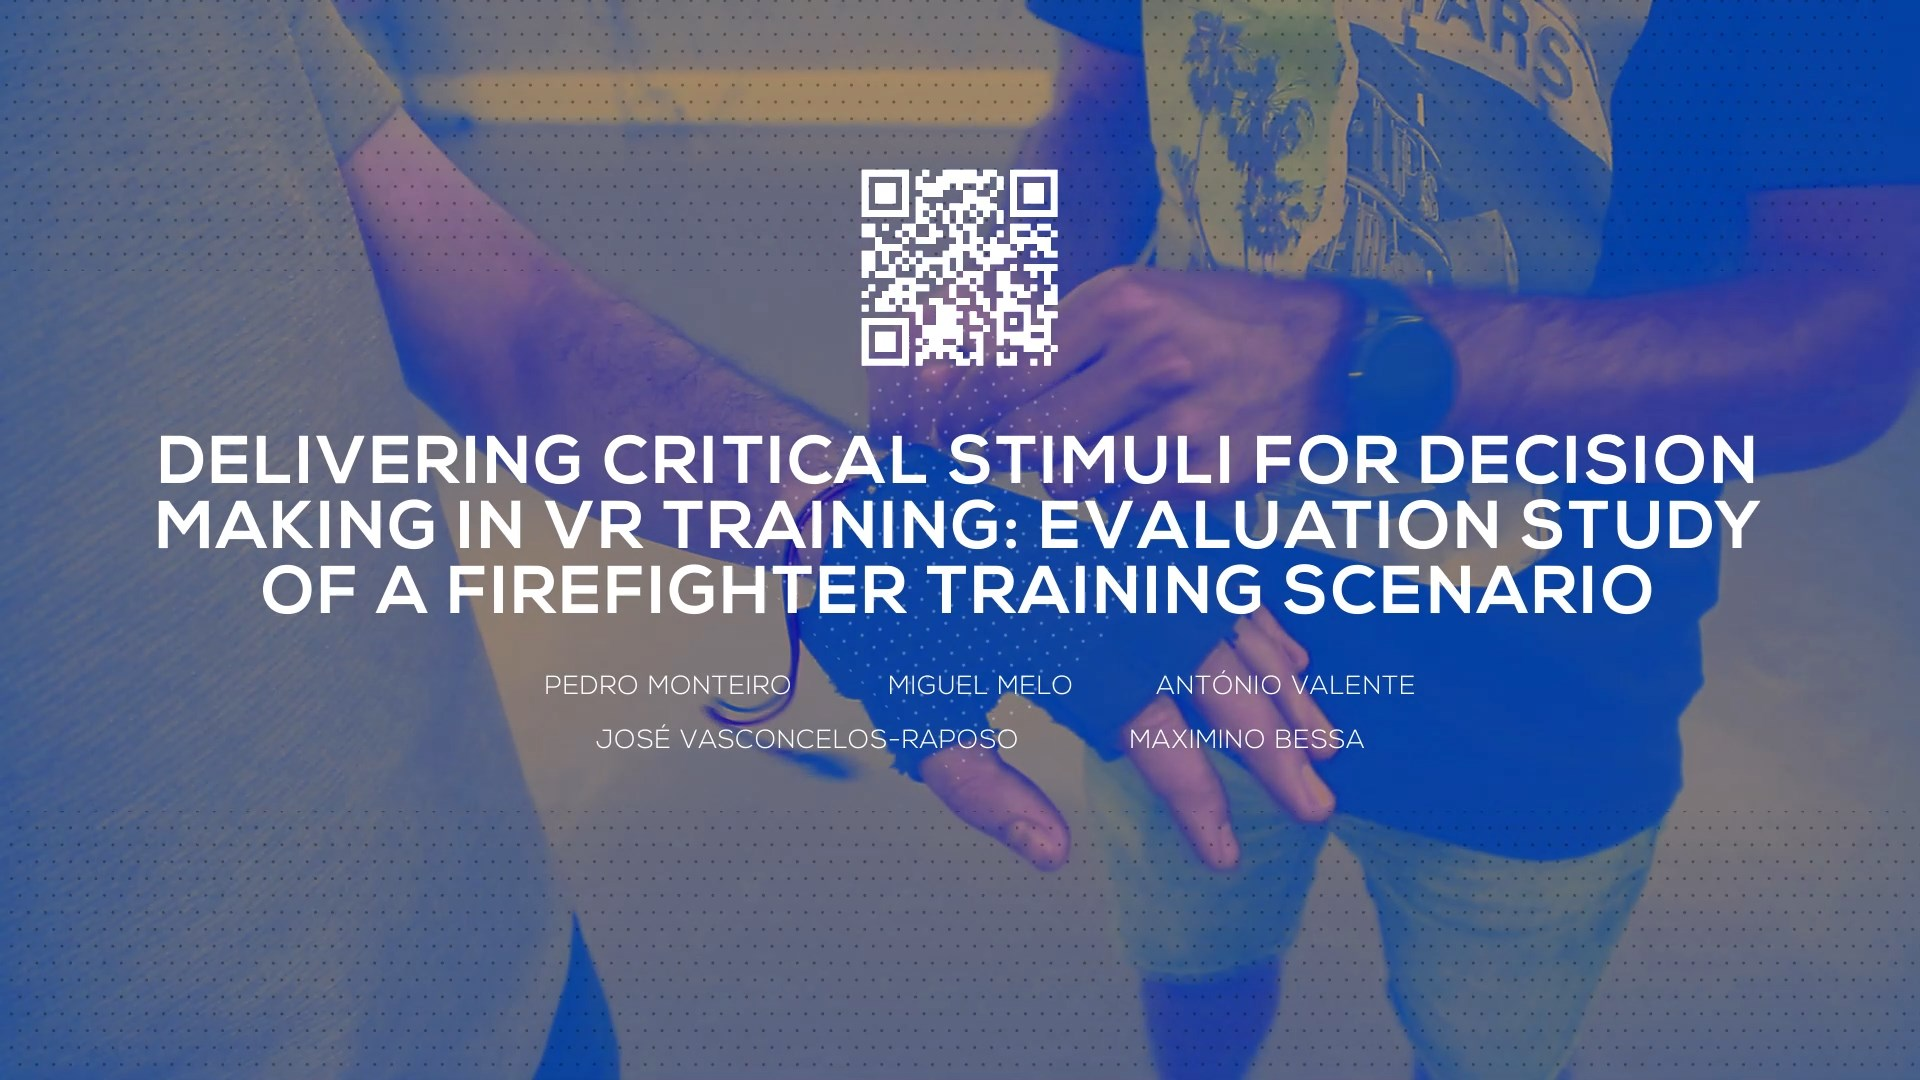 Delivering Critical Stimuli for Decision Making in VR Training